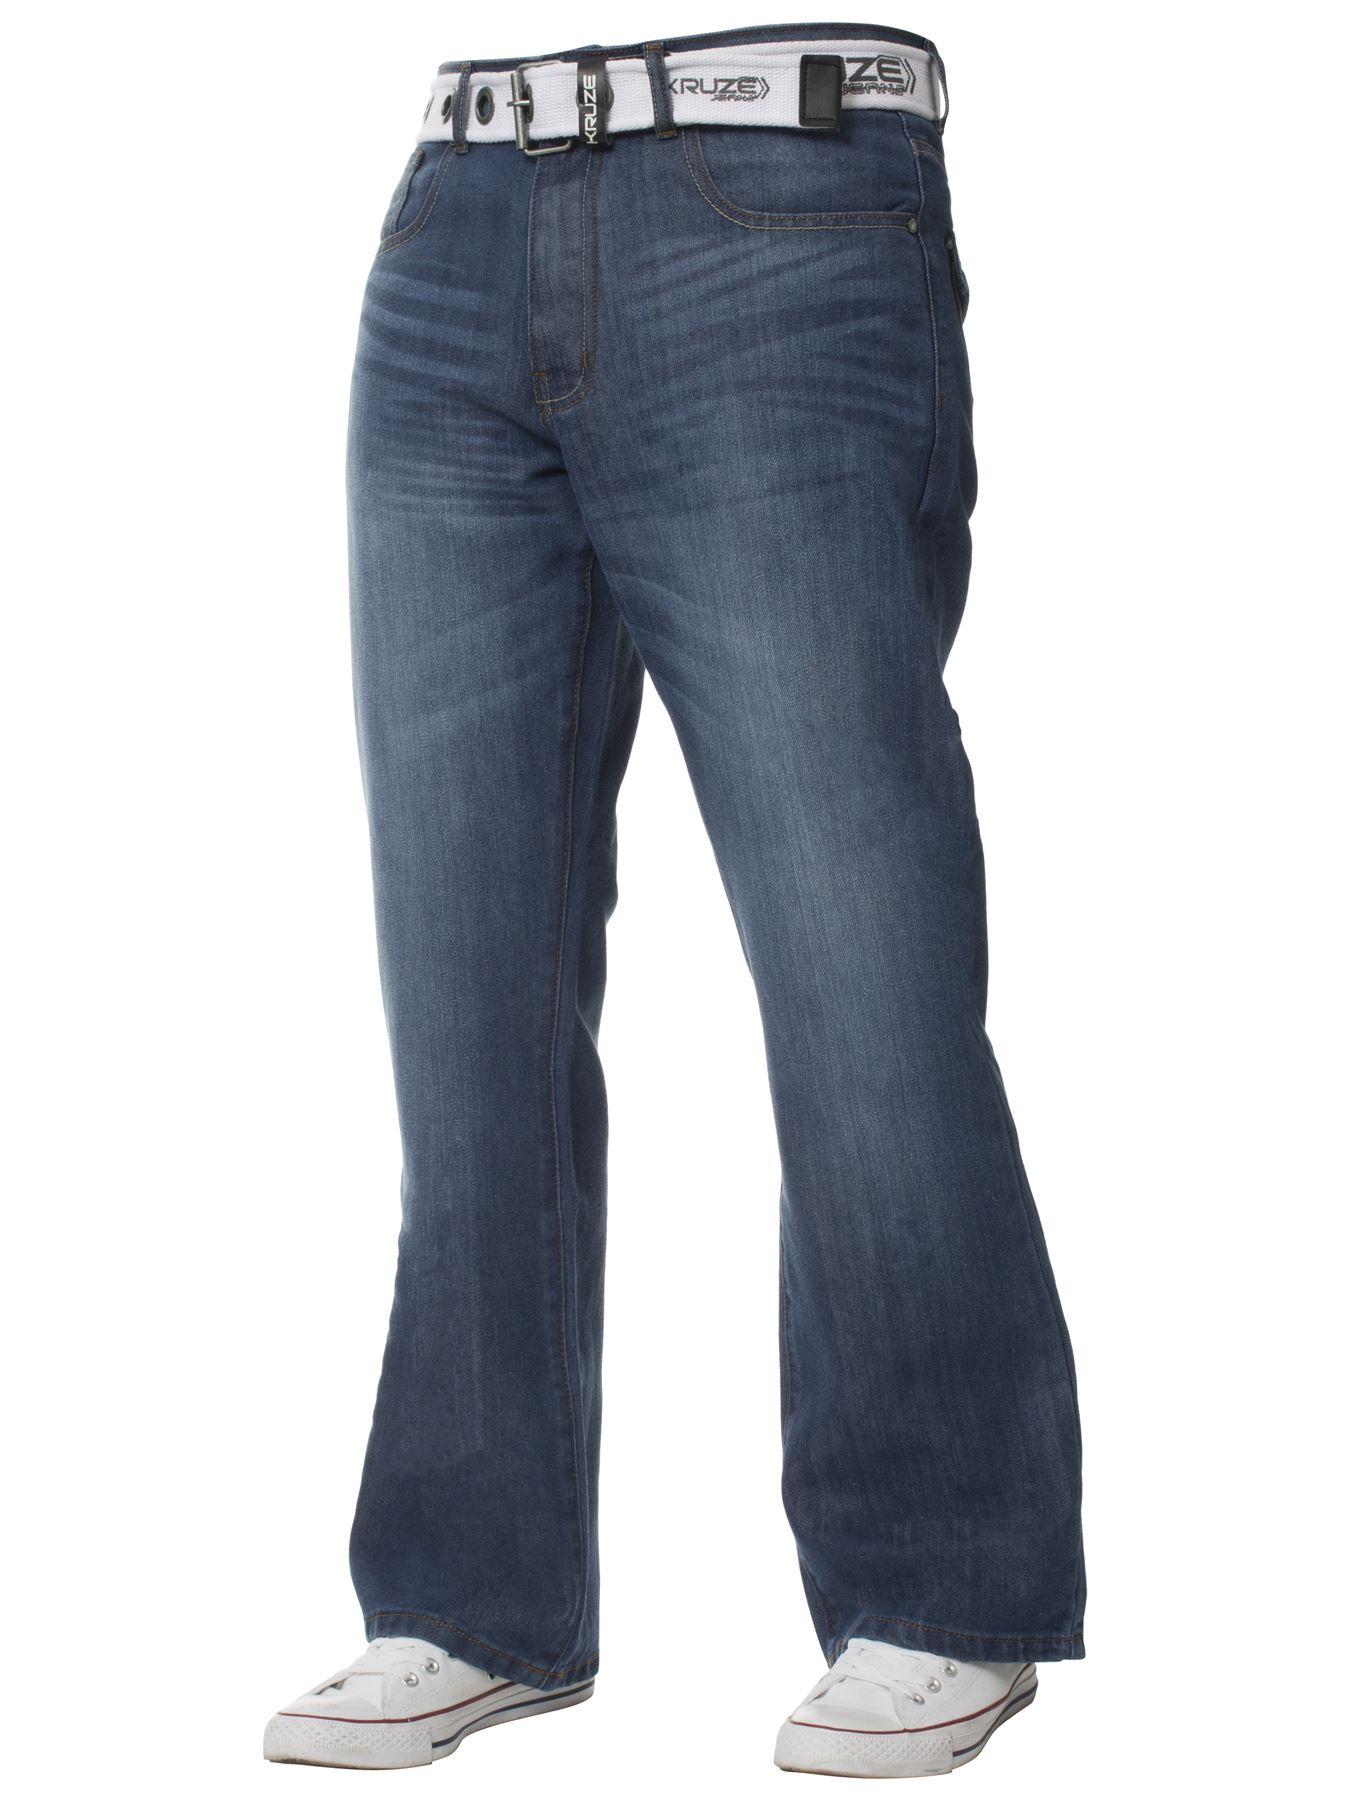 Kruze-Mens-Bootcut-Jeans-Flared-Wide-Leg-Denim-Pants-Big-Tall-King-All-Waists thumbnail 3